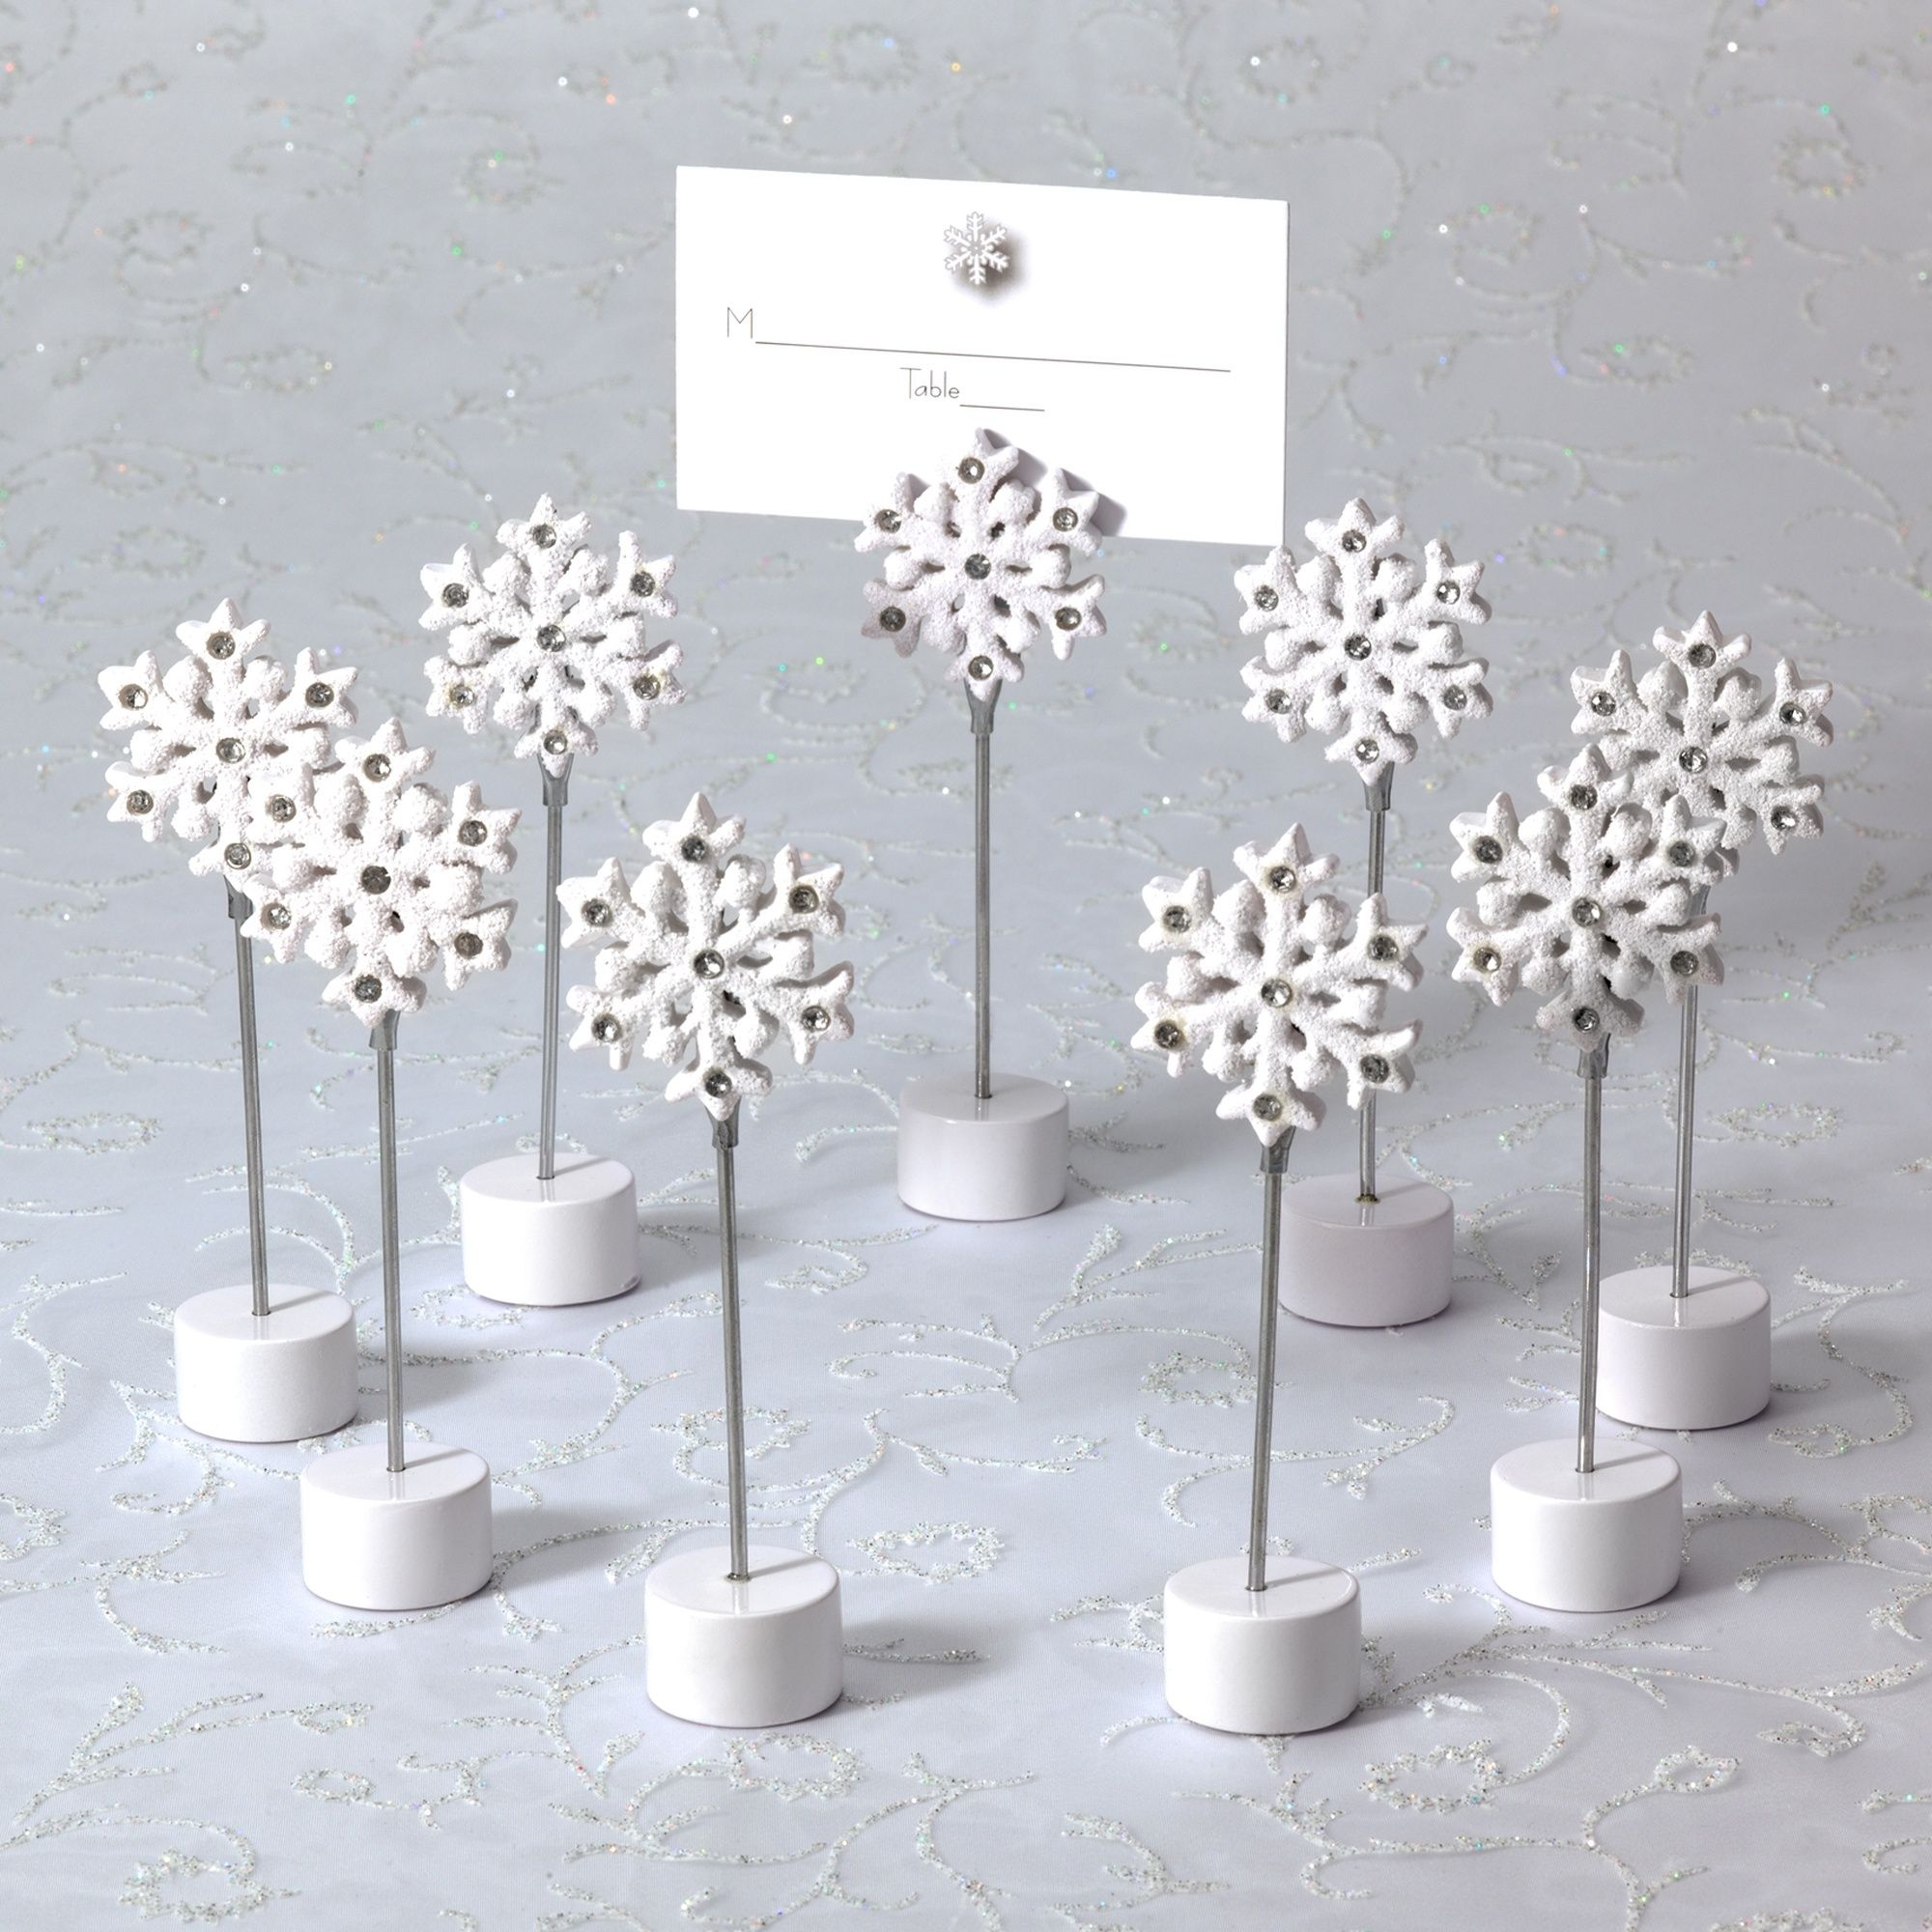 Ideas For Place Cards At A Wedding: Pin By BridesGroomsParents … Just Wedding Ideas... On